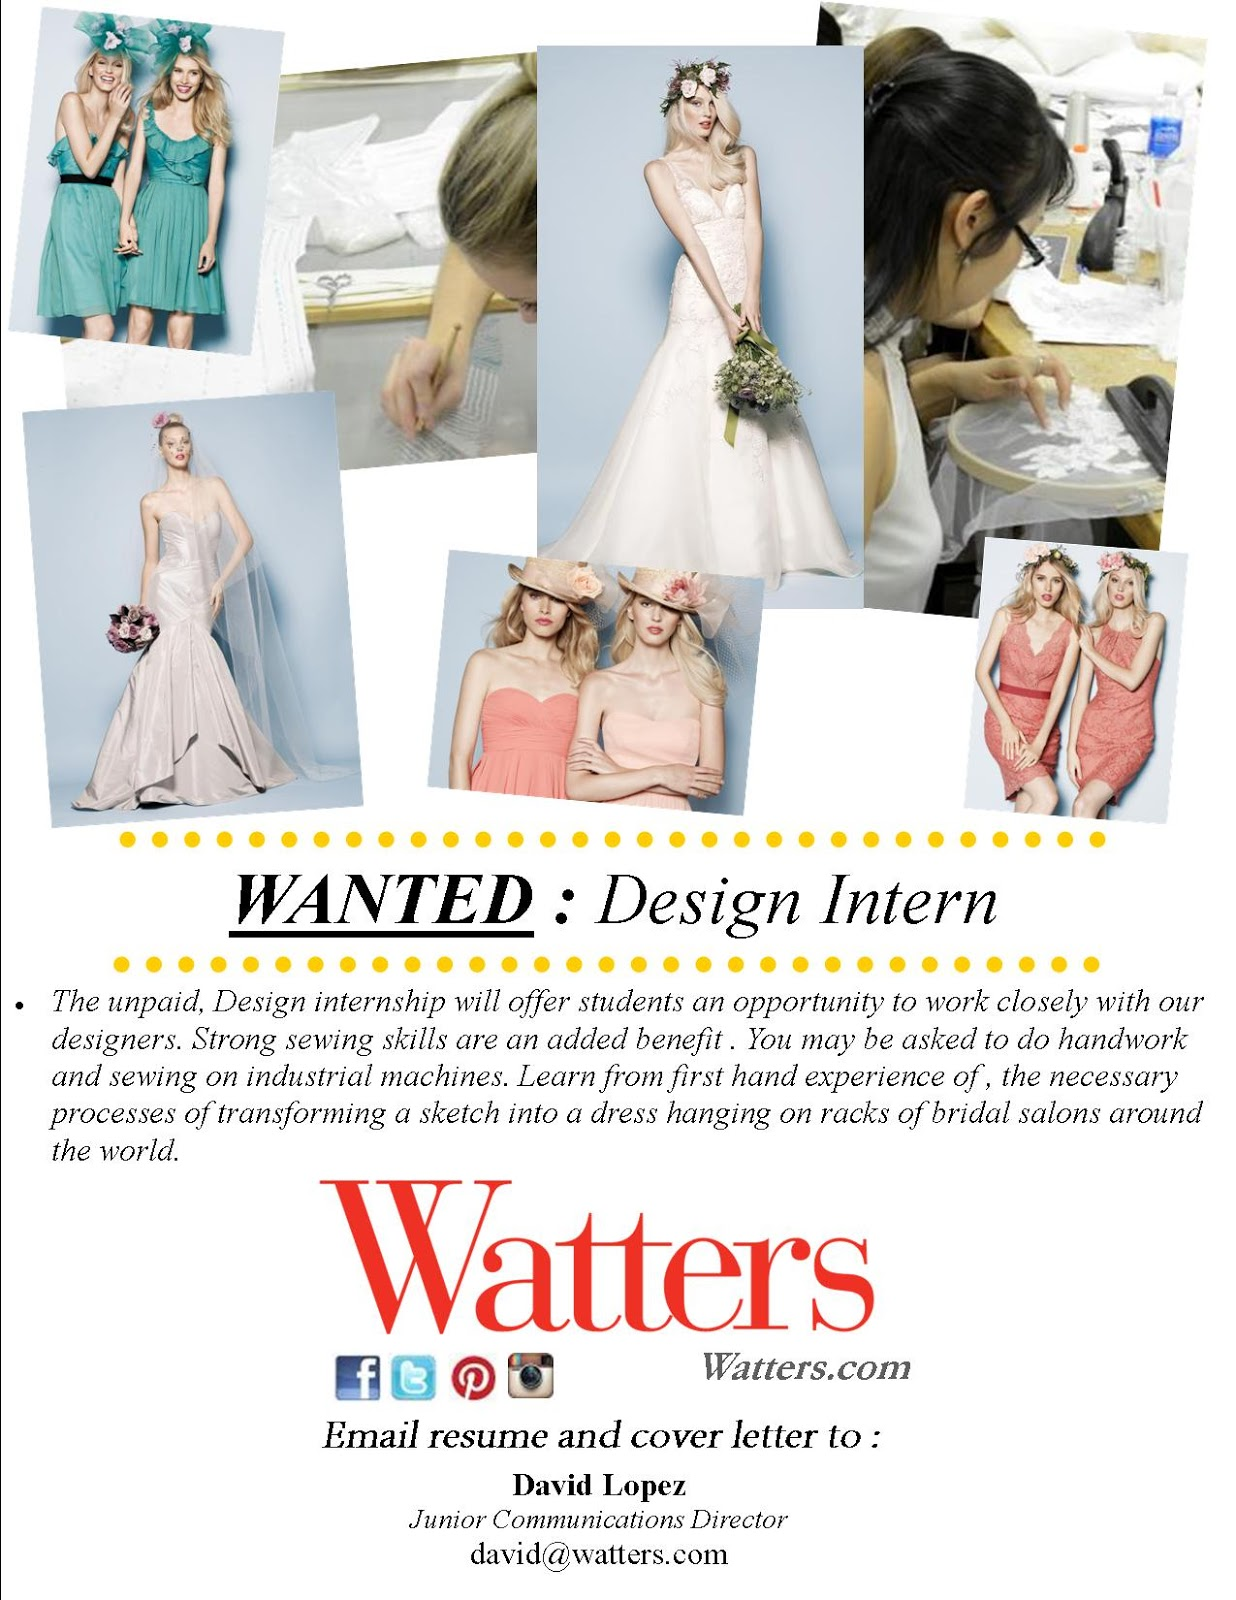 Fashion Design Blog Internship Opportunity At Watters